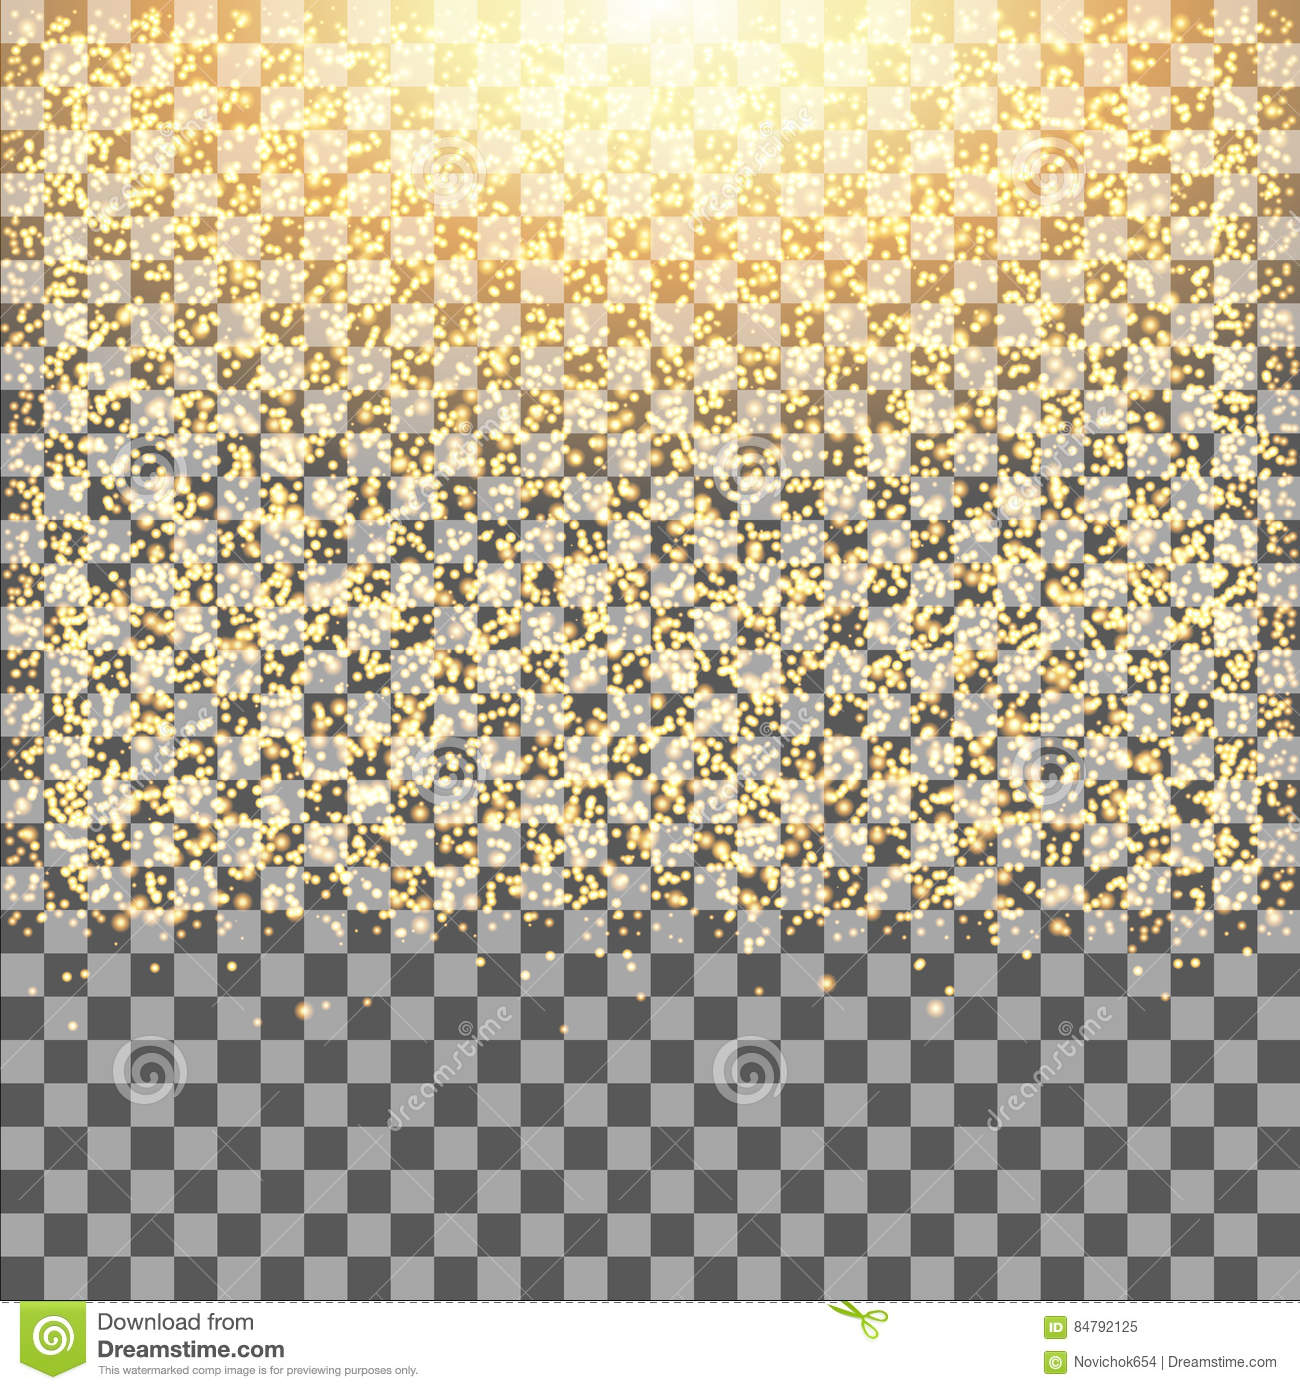 gold glow glitter sparkles on transparent background falling dust